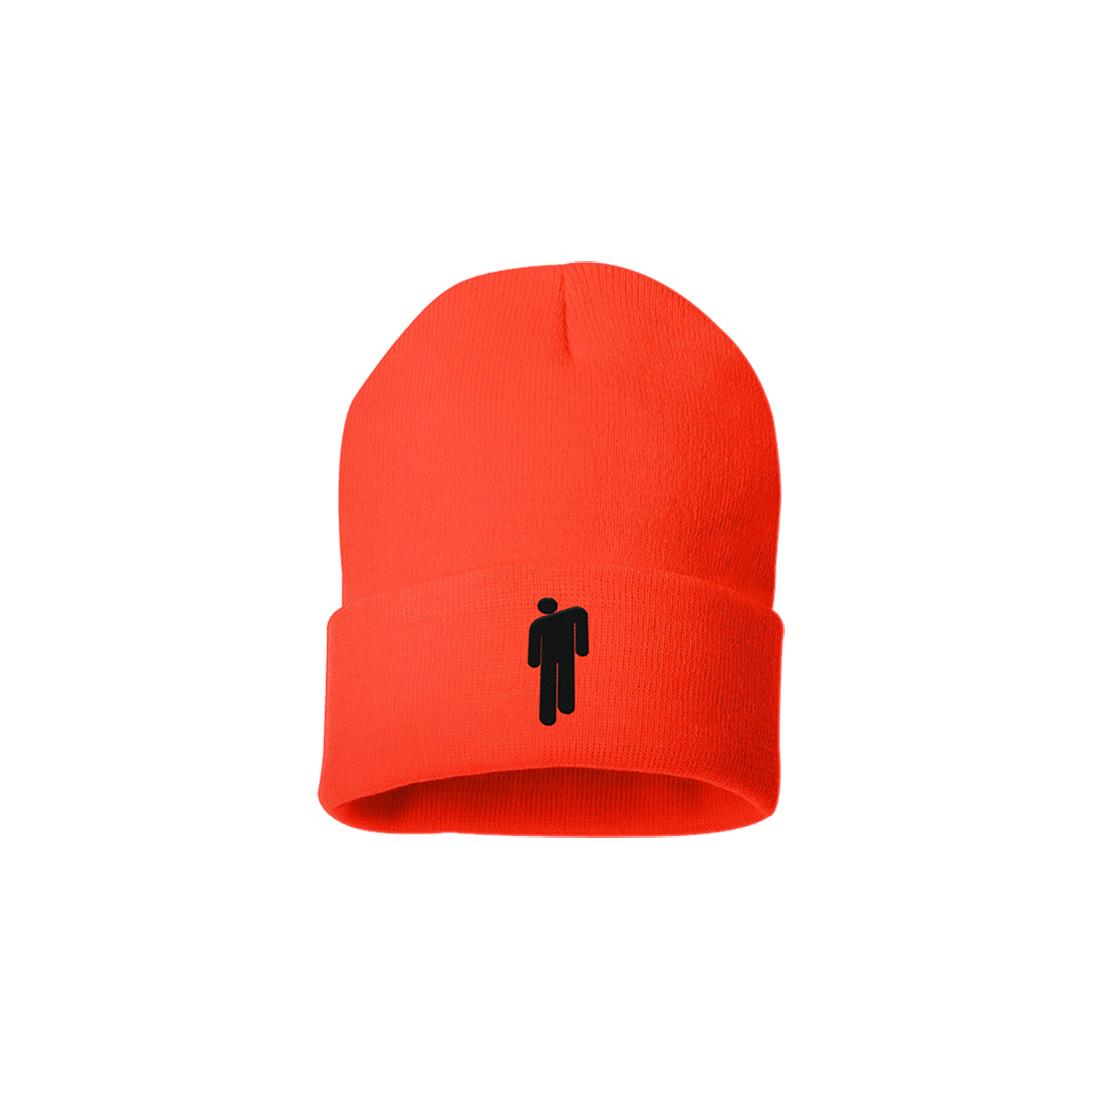 9b9370ff ... Litho and blohsh Orange Beanie. Get them now – limited quantities  available for a limited time in the US only.  http://smarturl.it/BillieEilishStore … ...